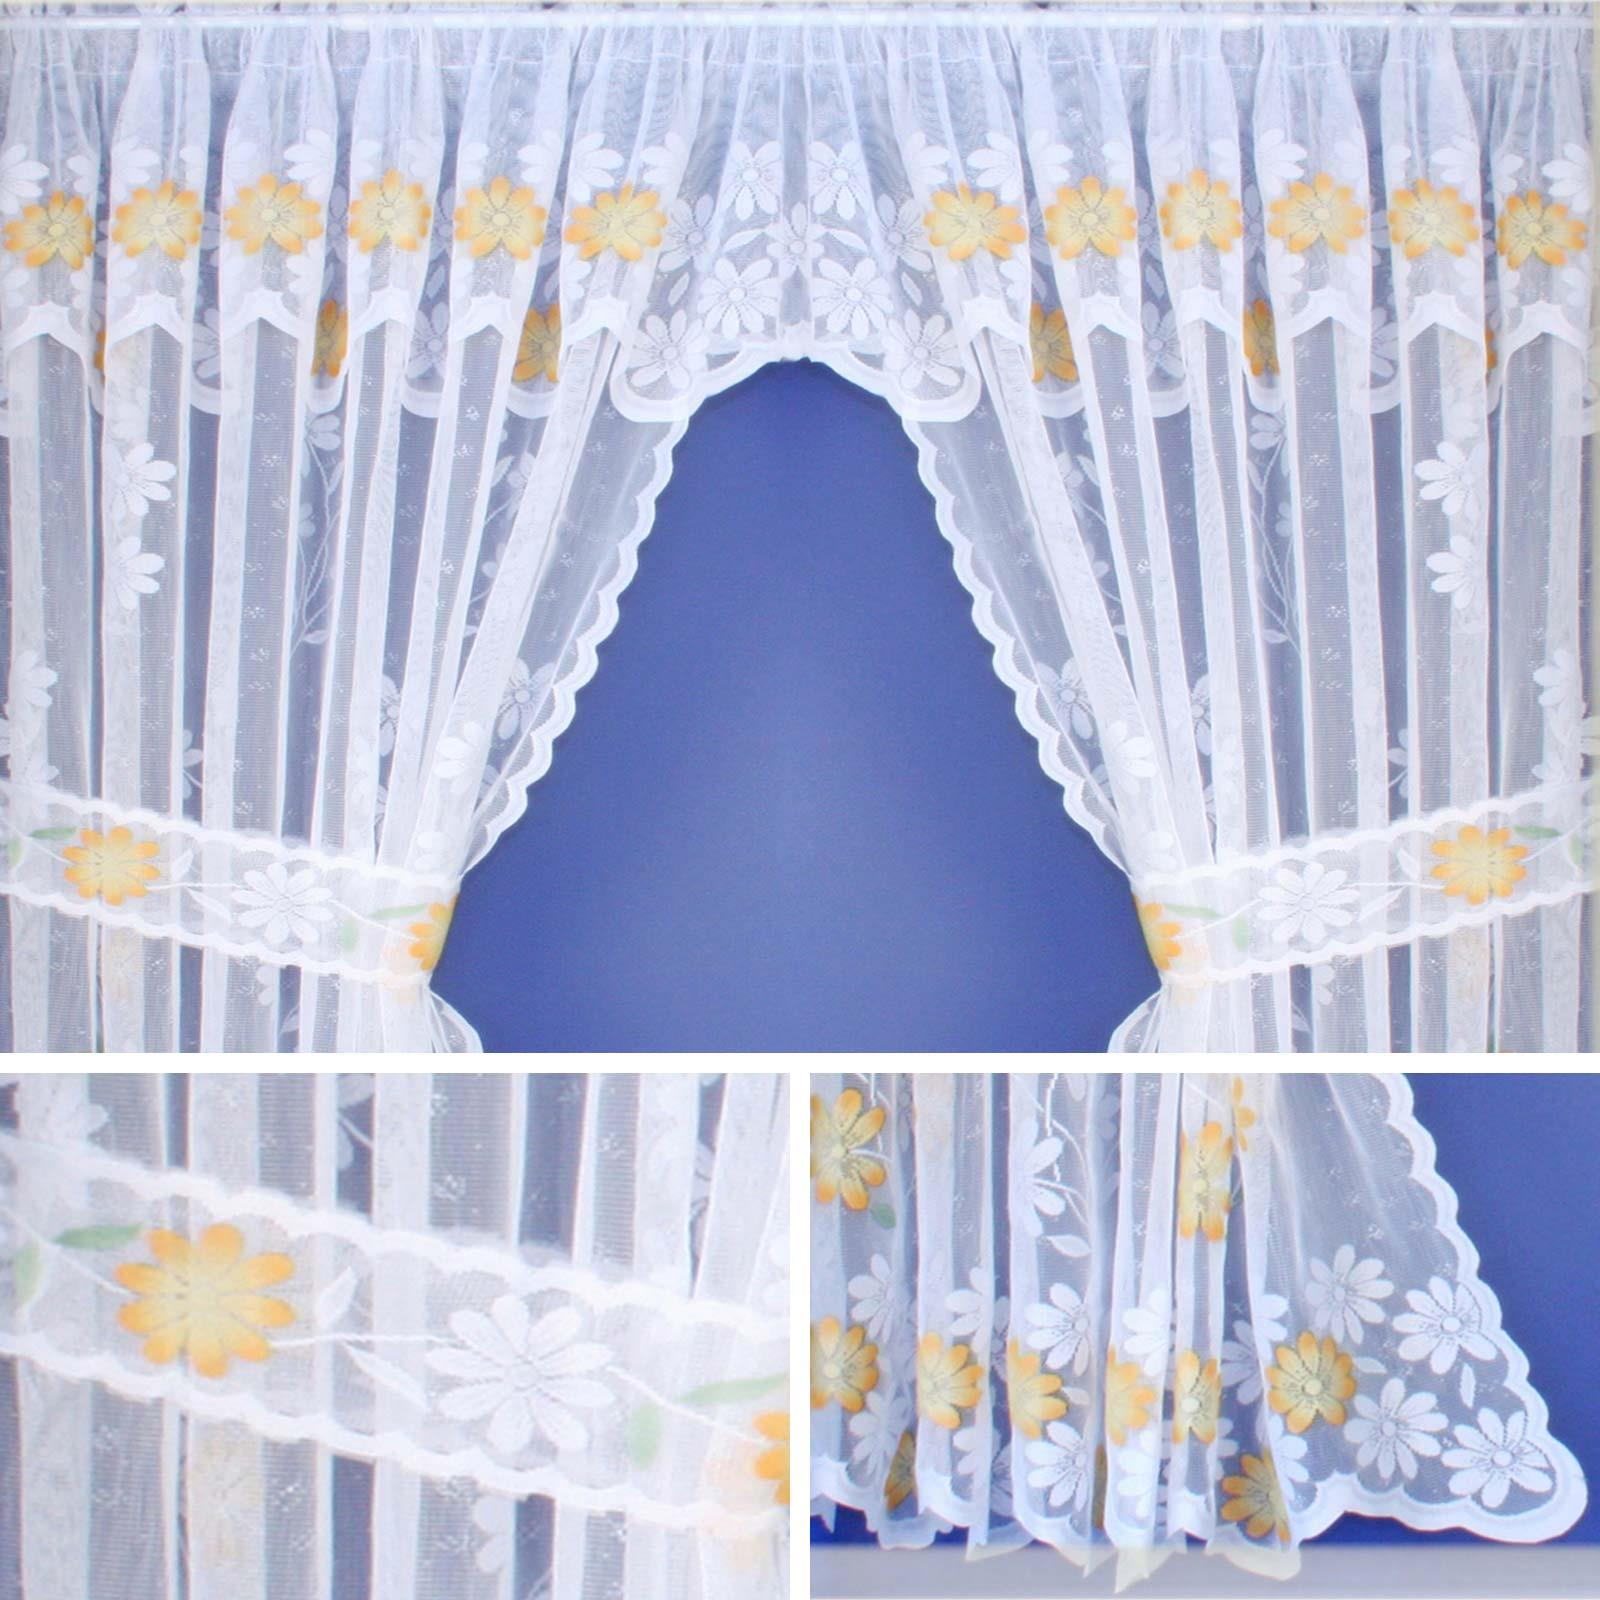 Home Furniture Diy Curtains Pelmets Lace Curtain Sets White Kew Complete Kitchen Window Floral Ready Made Curtains Bortexgroup Com